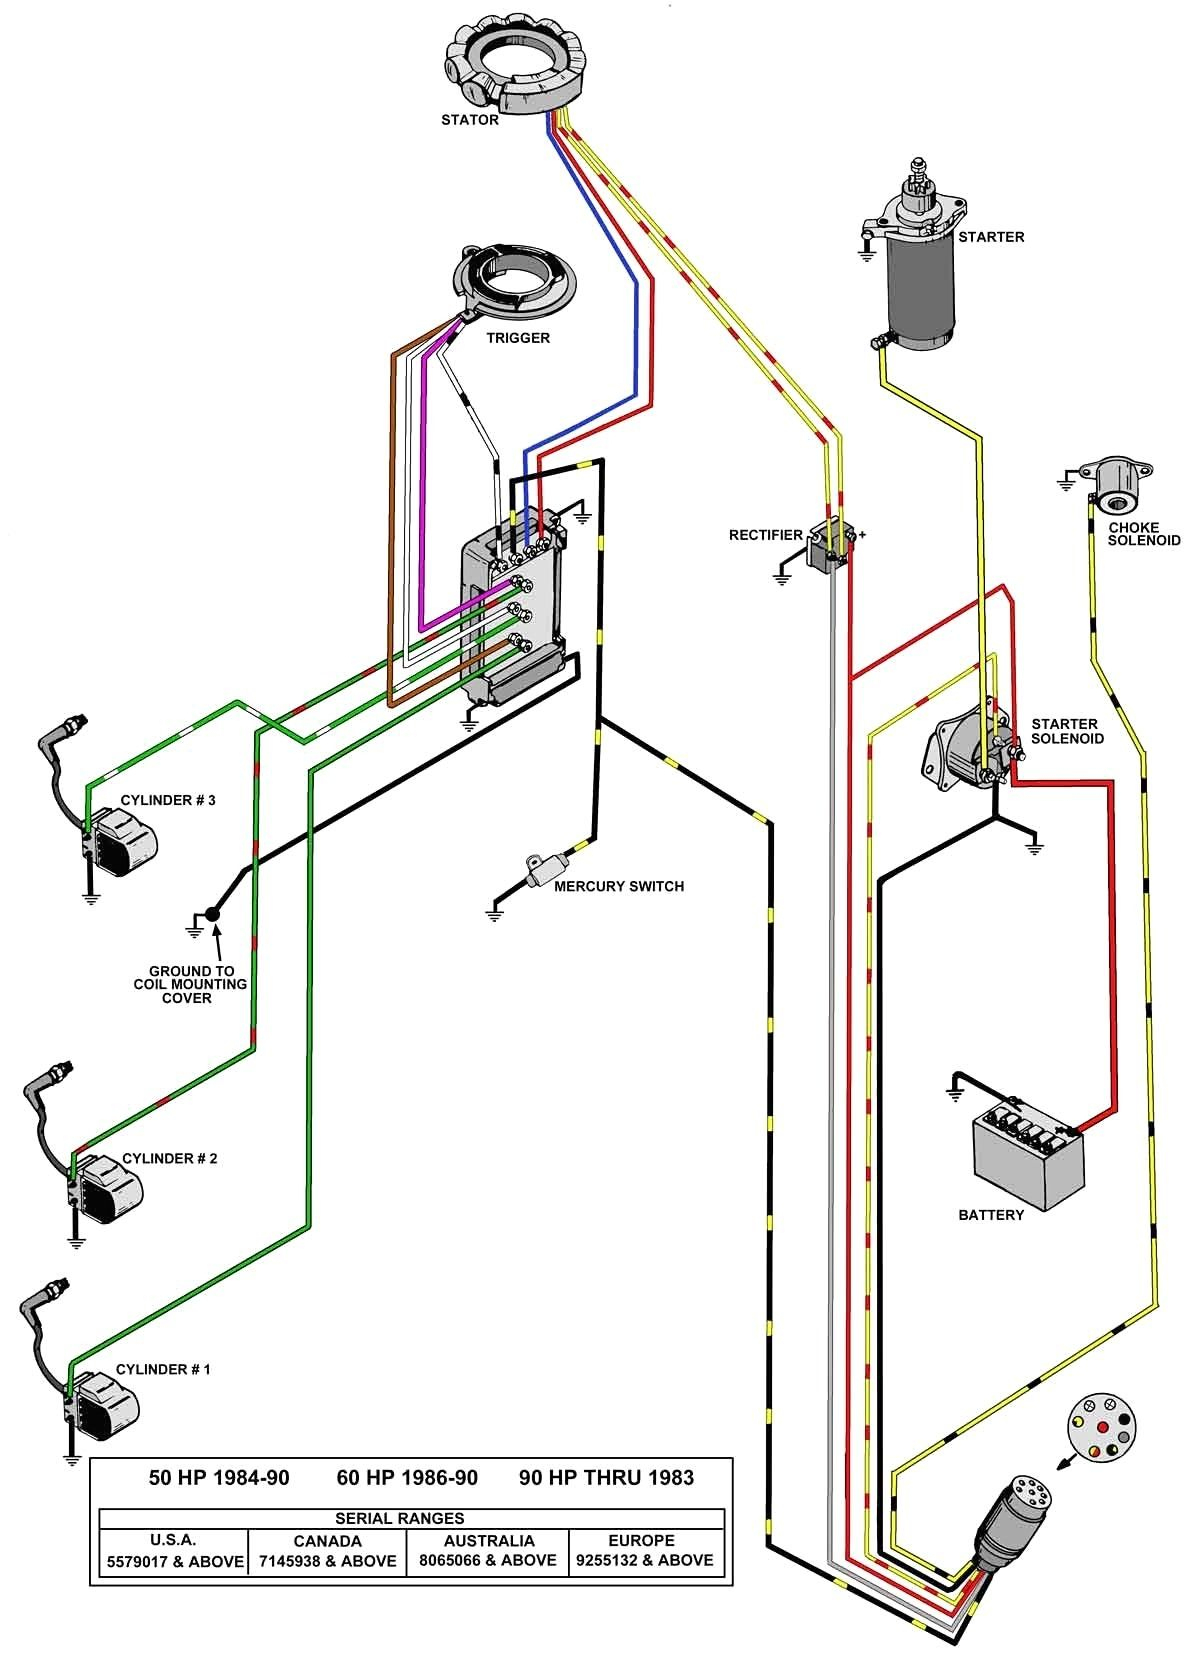 79 Johnson Wiring Diagram Free Picture Schematic | Wiring Library - Johnson Ignition Switch Wiring Diagram